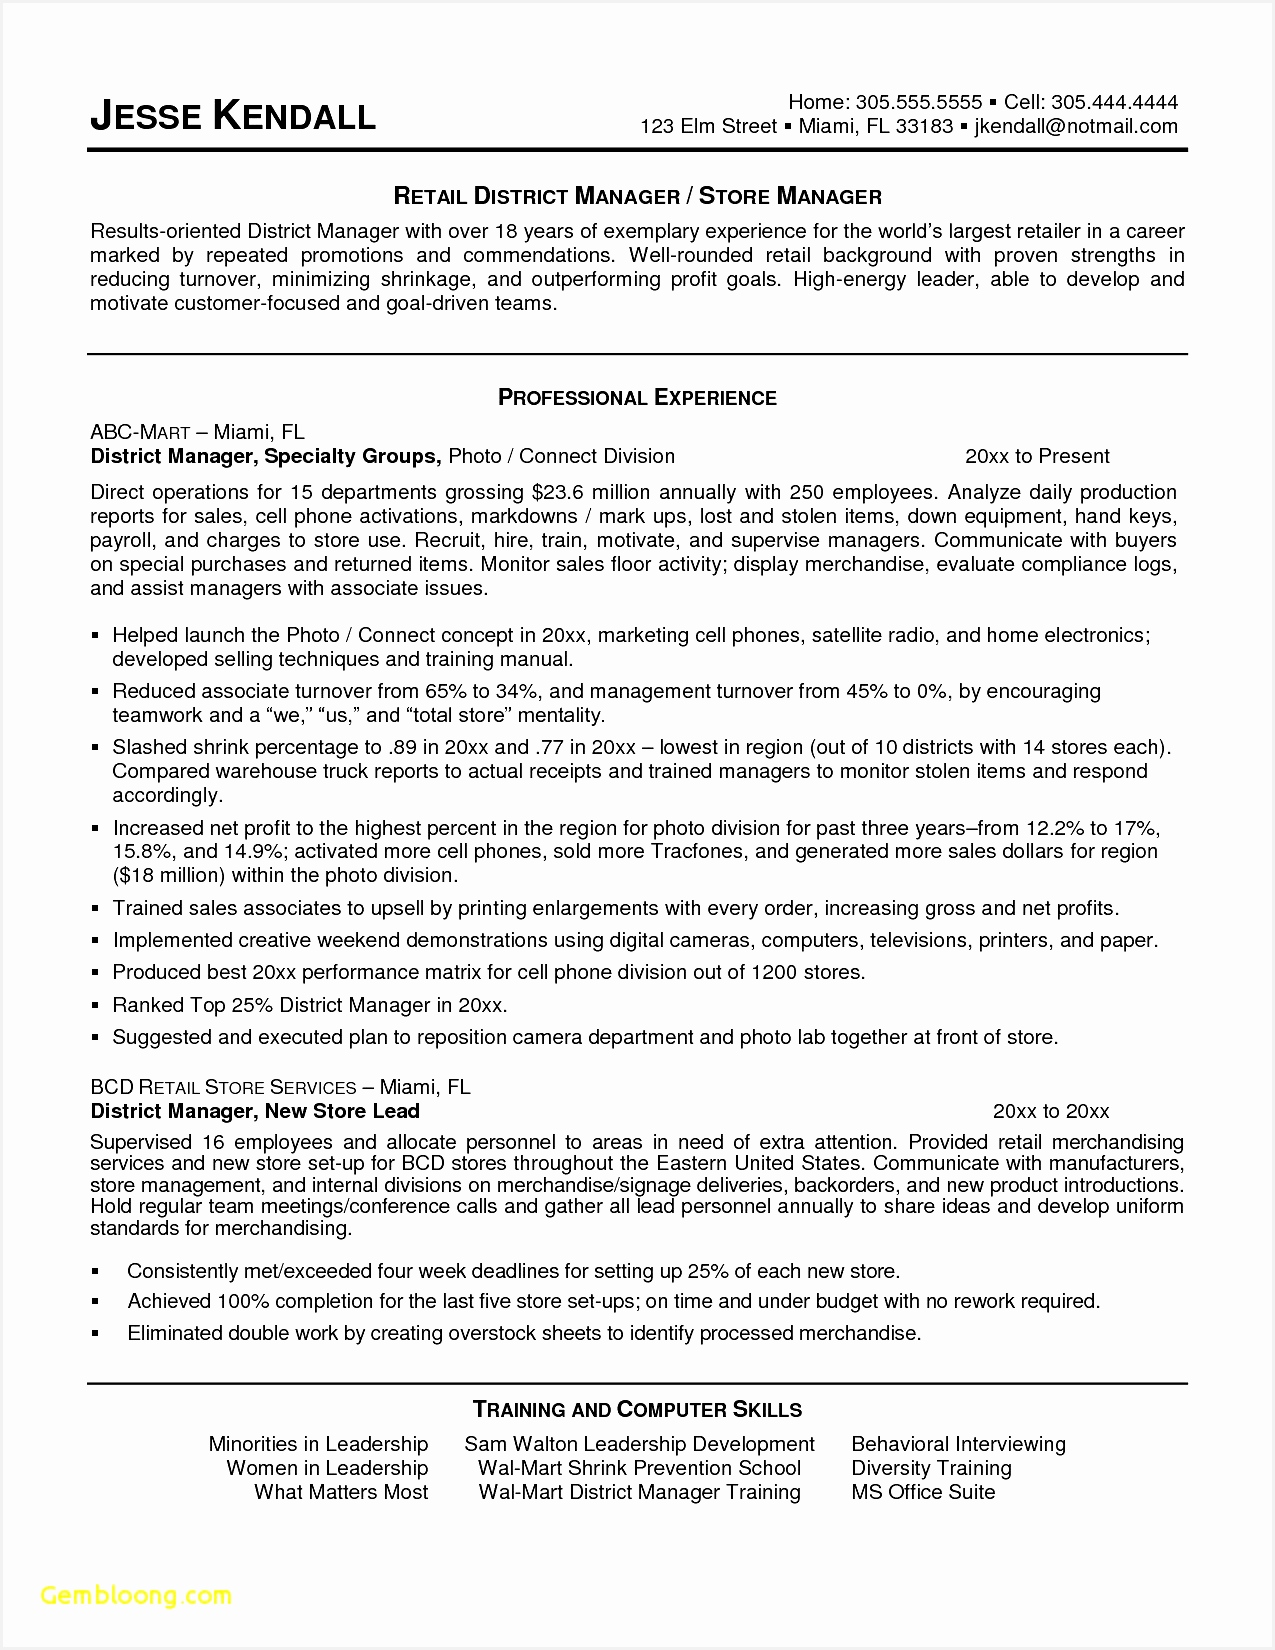 Hospitality Resume Templates Free Unique Fresh Grapher Resume Sample Beautiful Resume Quotes 0d Bar Manager16501275